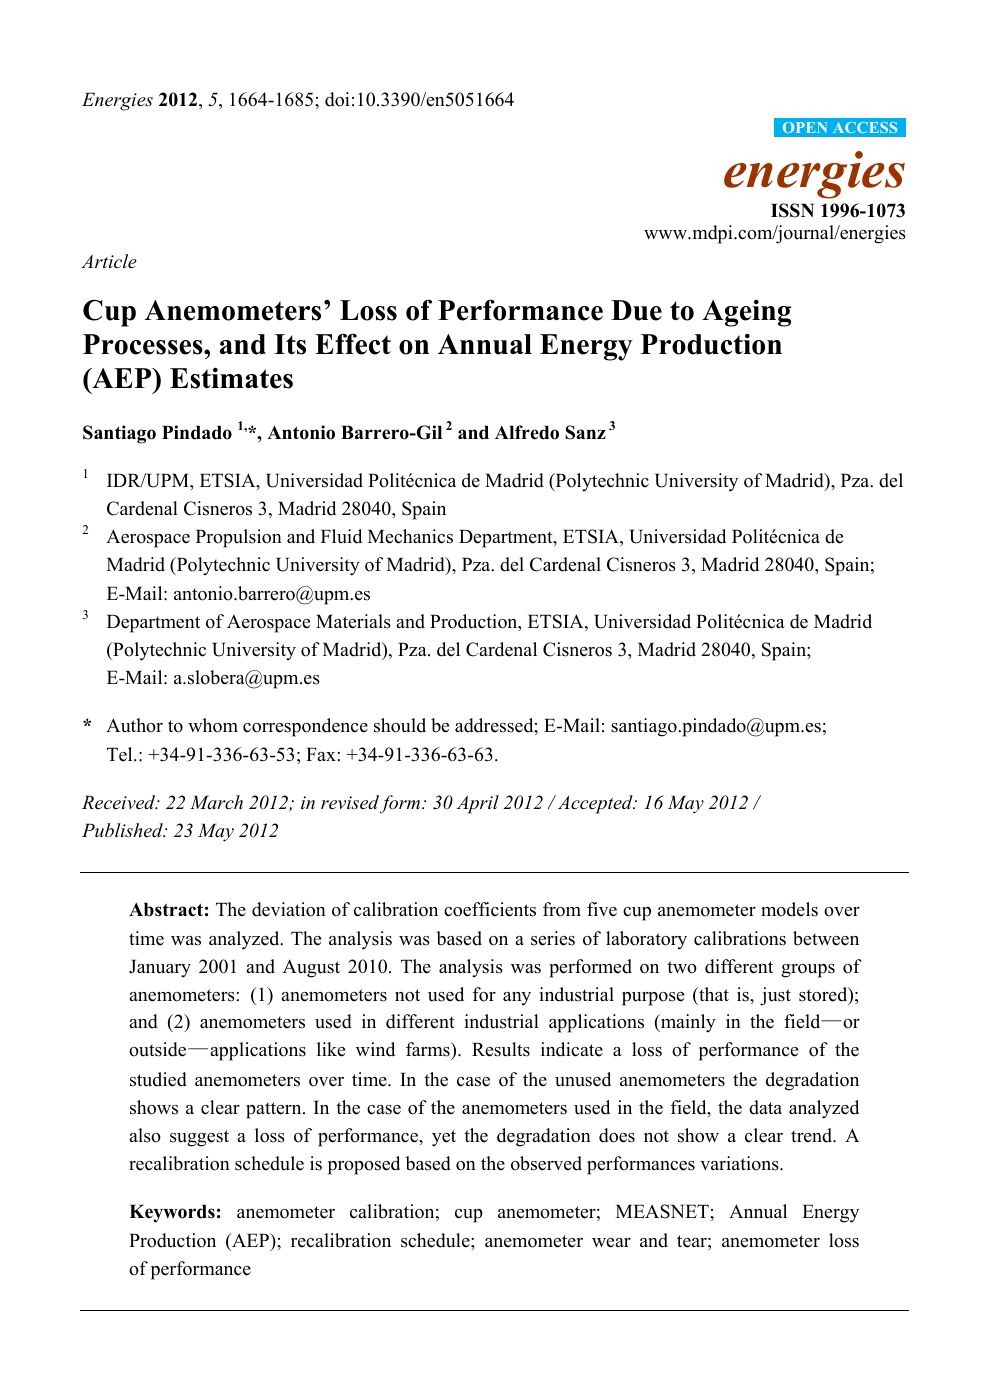 Cup Anemometers' Loss of Performance Due to Ageing Processes